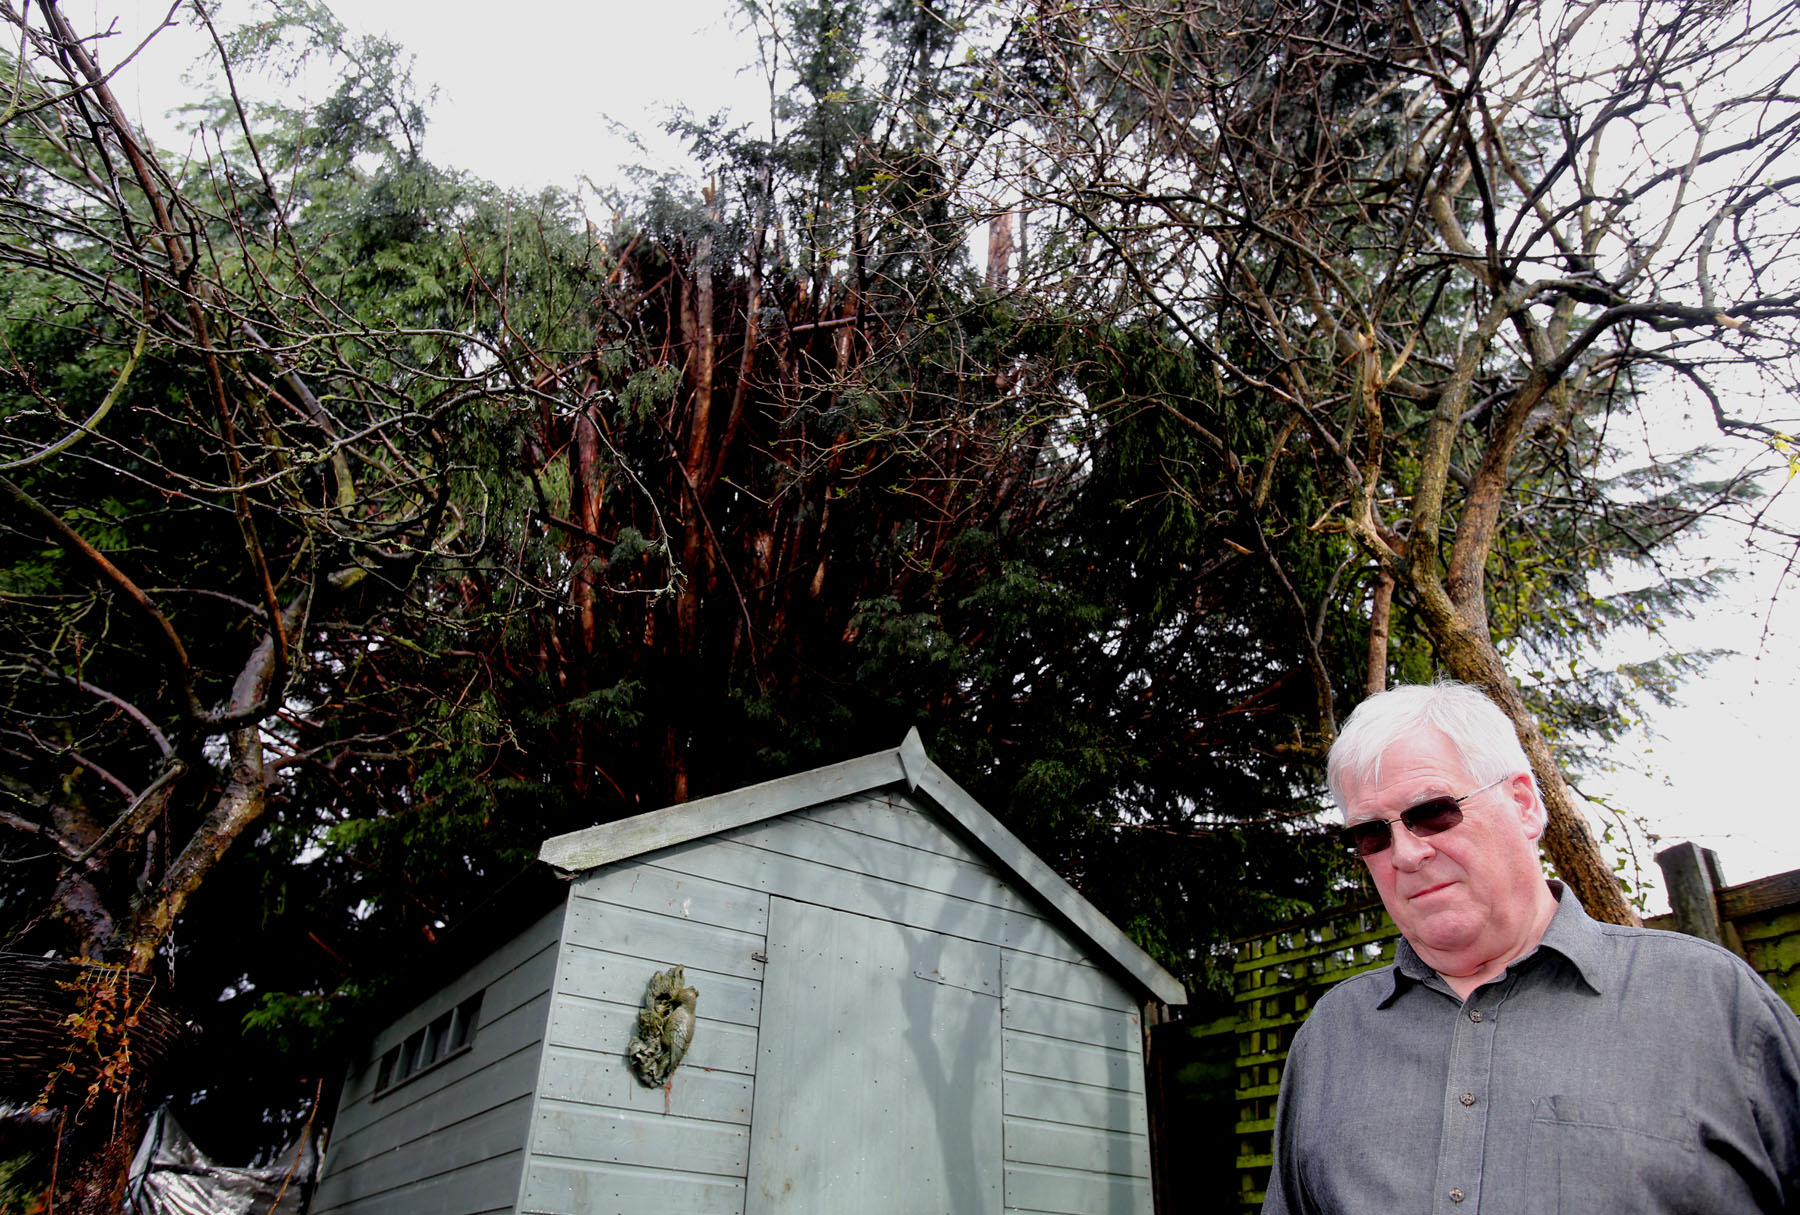 John Pearson with the conifer tree